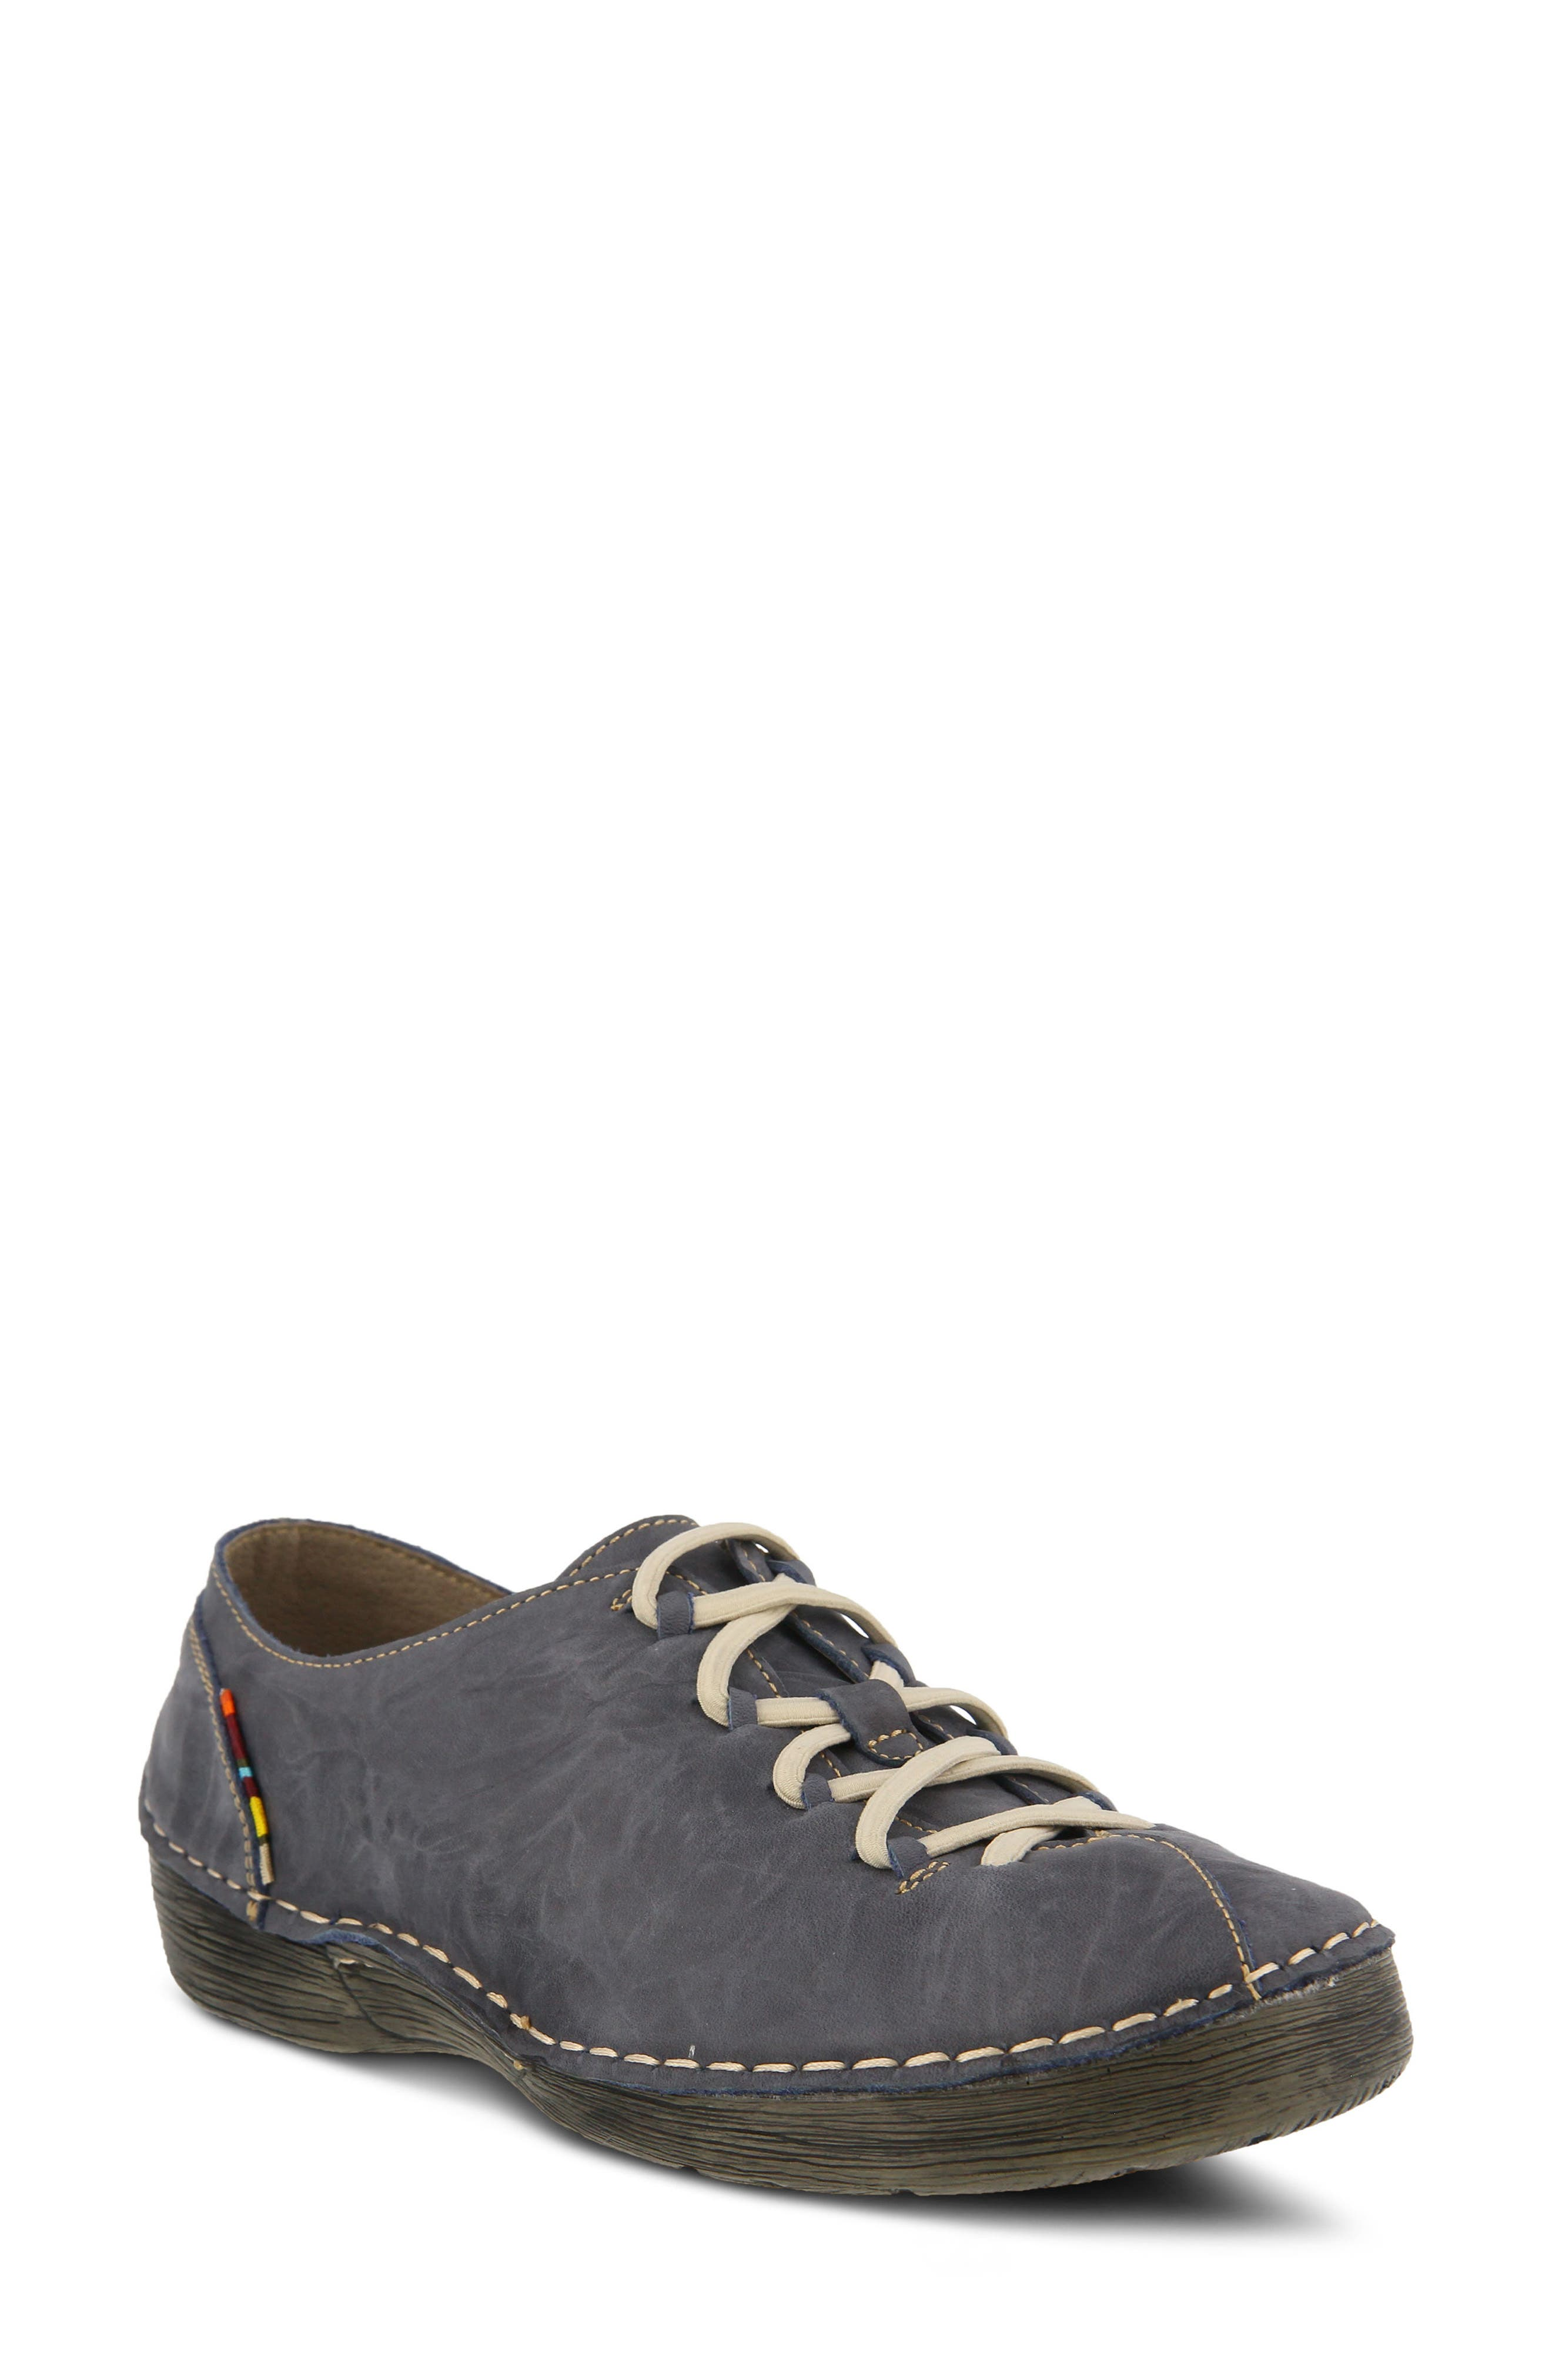 Carhop Sneaker,                         Main,                         color, 400